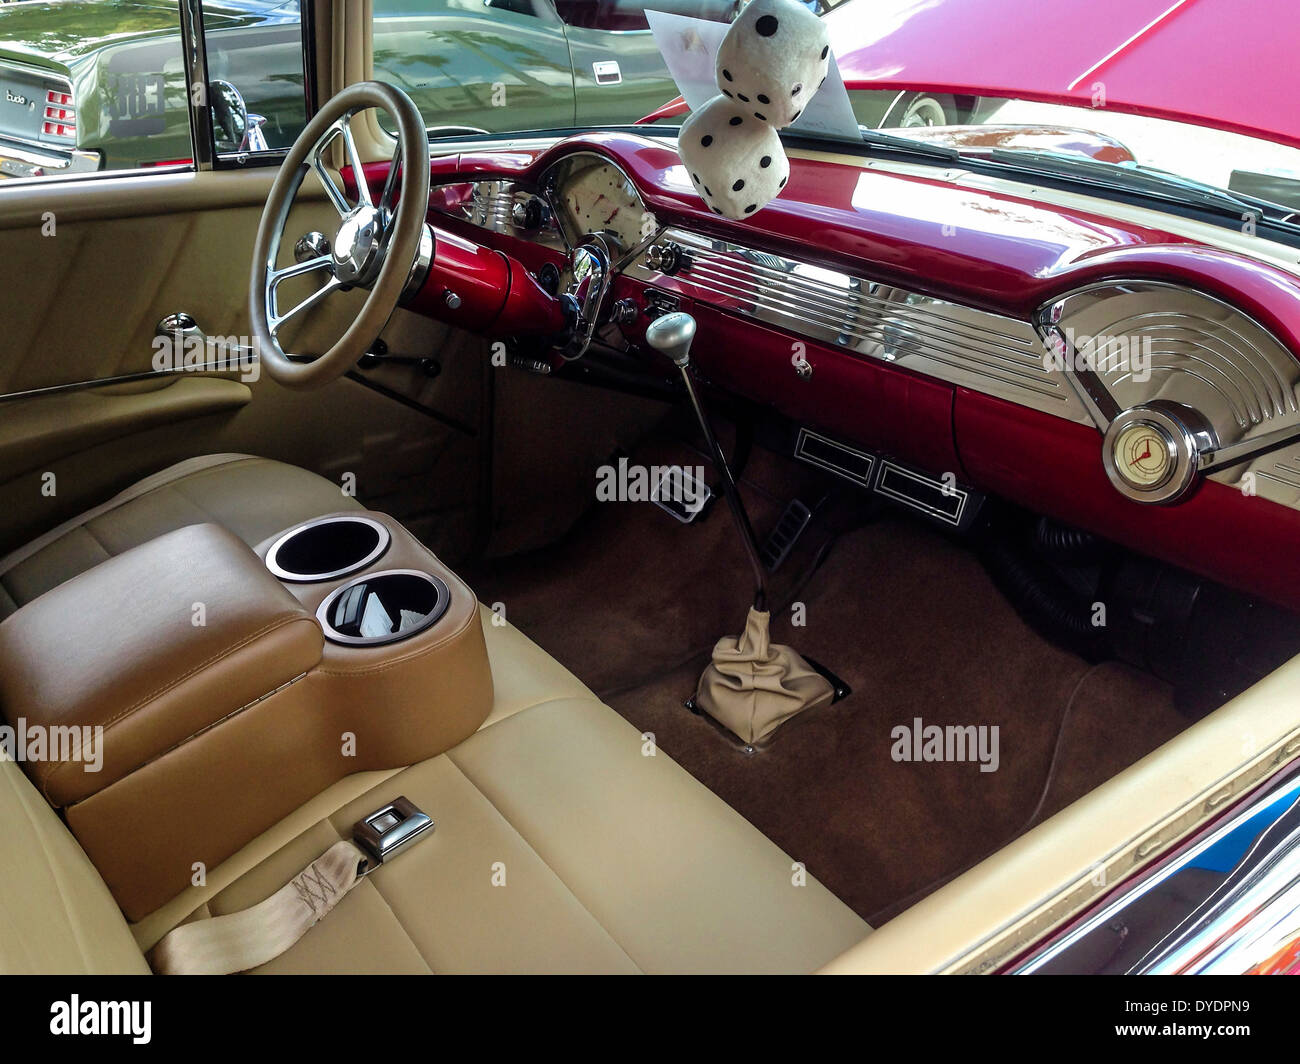 1955 chevy bel air custom interior stock photo royalty free image 68530037 alamy. Black Bedroom Furniture Sets. Home Design Ideas